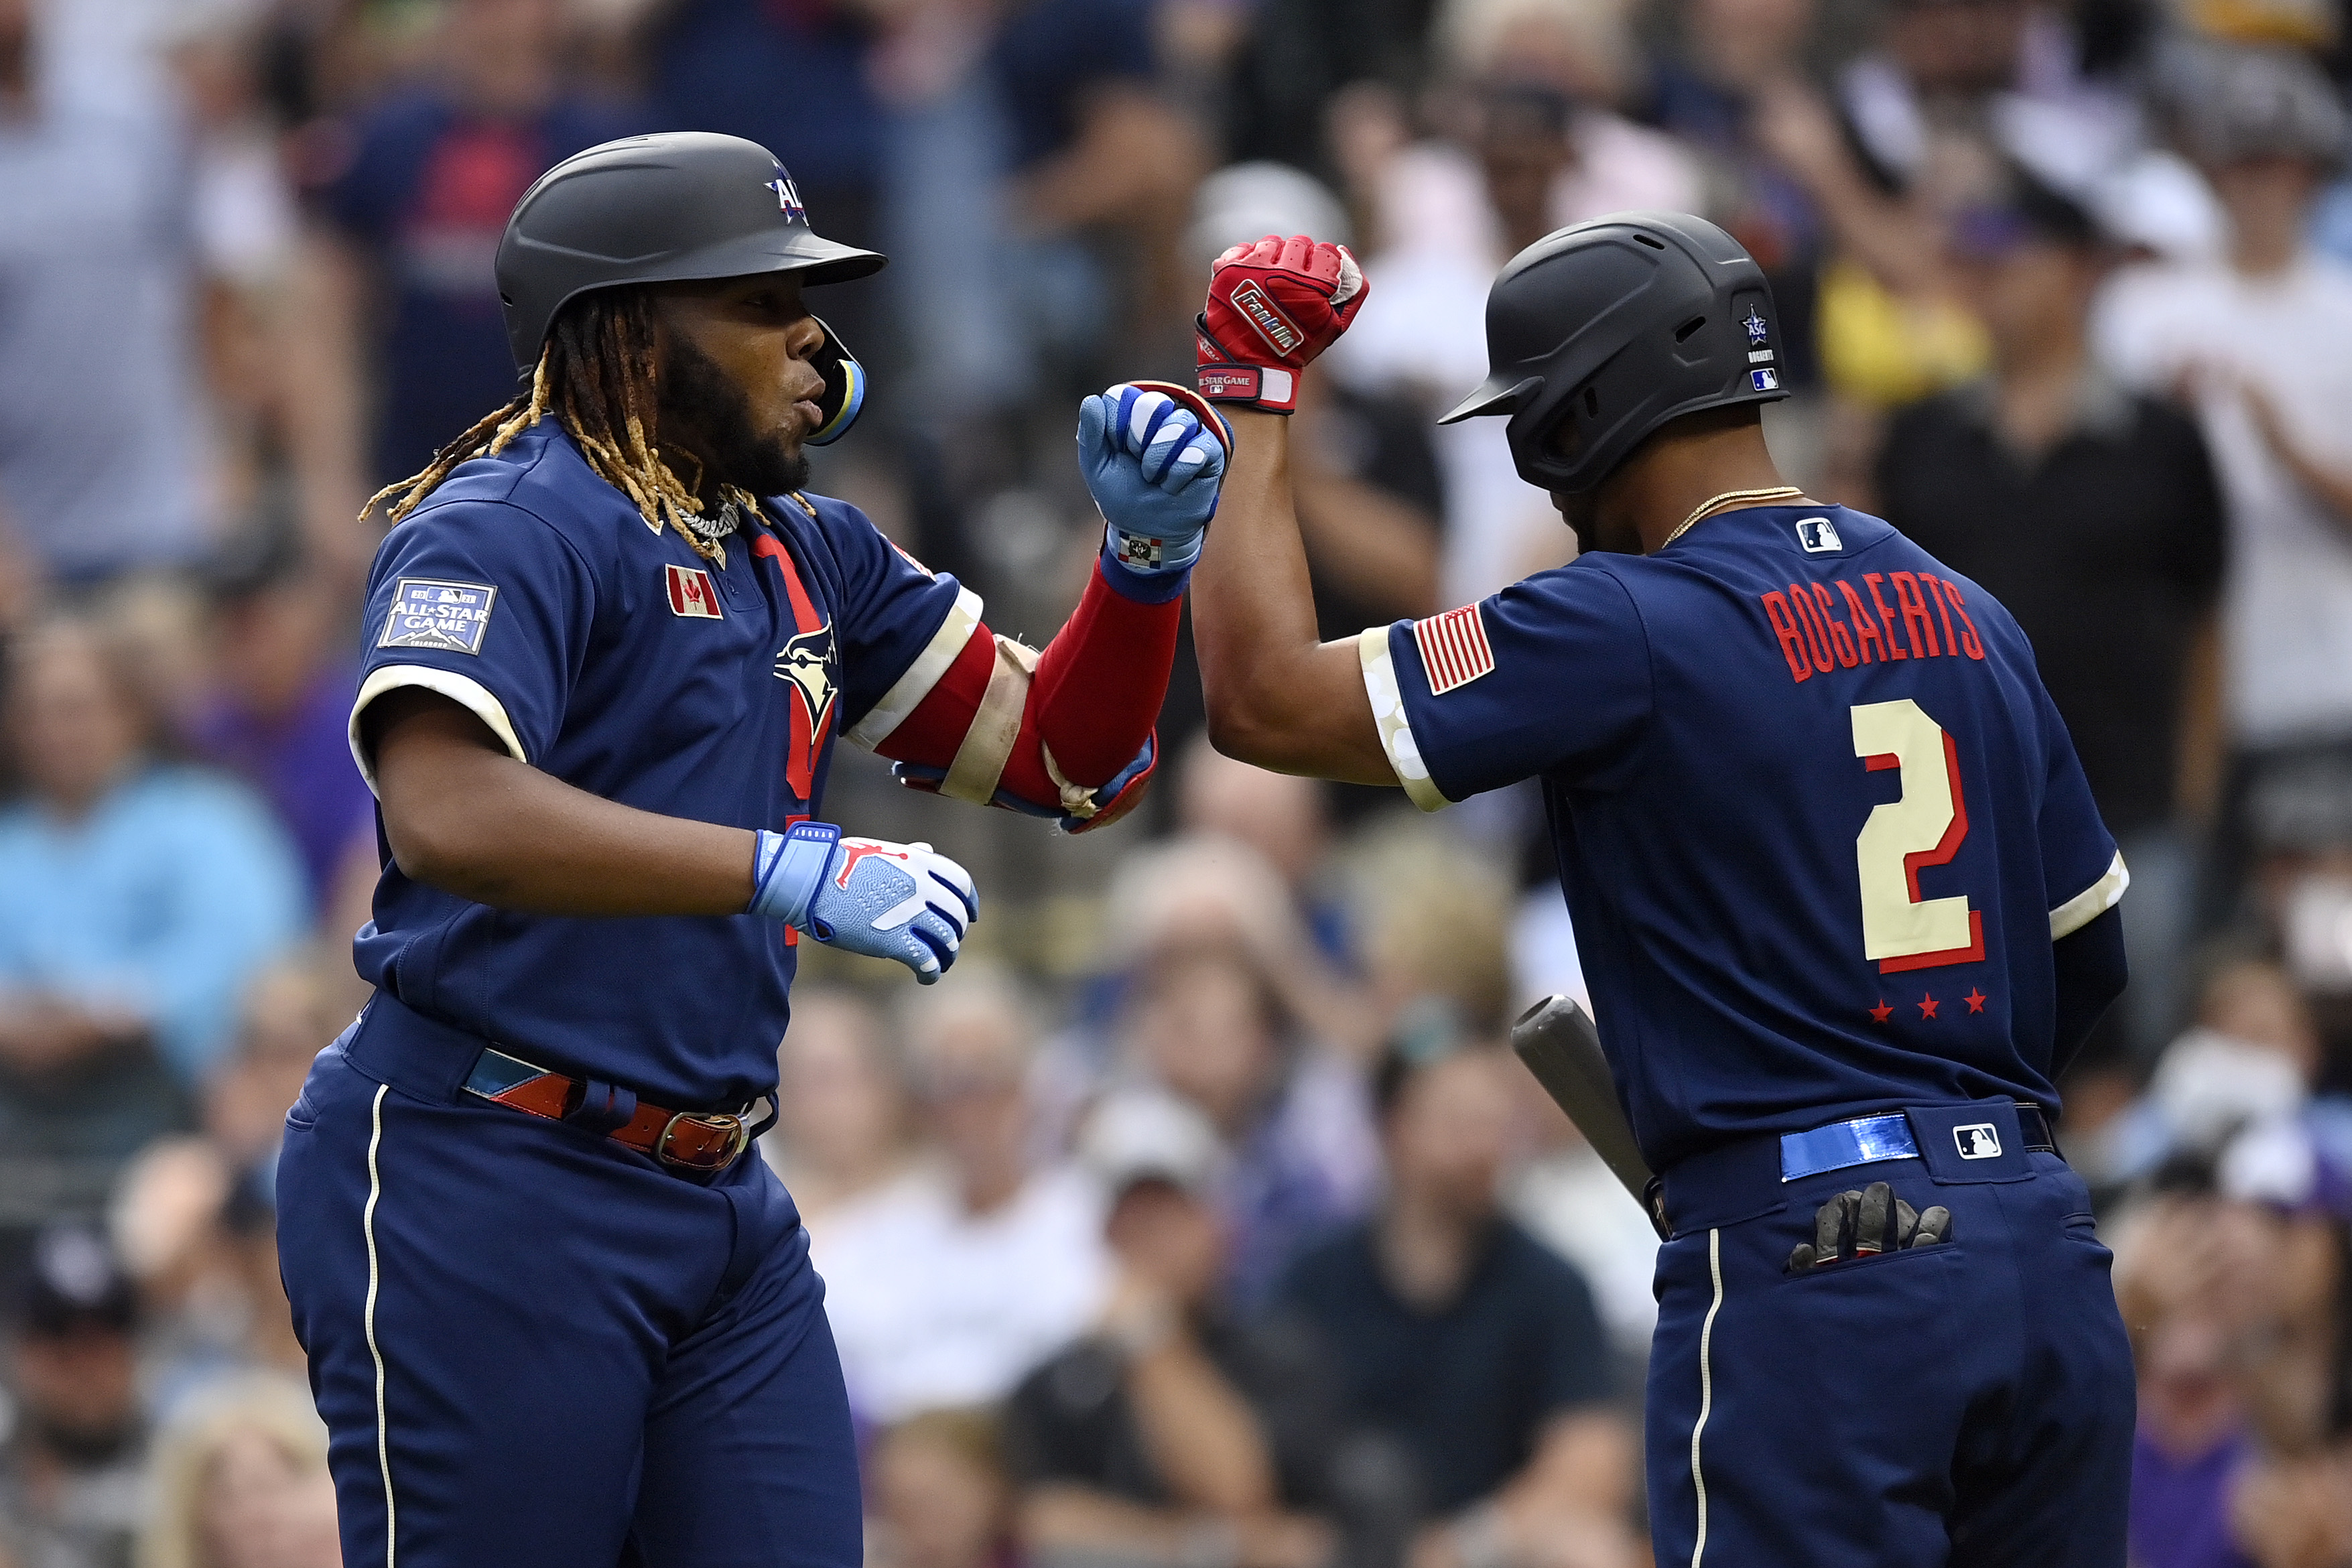 Vladimir Guerrero Jr. #27 of the Toronto Blue Jays celebrates with Xander Bogaerts #2 of the Boston Red Sox after hitting a home run in the third inning during the 91st MLB All-Star Game at Coors Field on July 13, 2021 in Denver, Colorado.